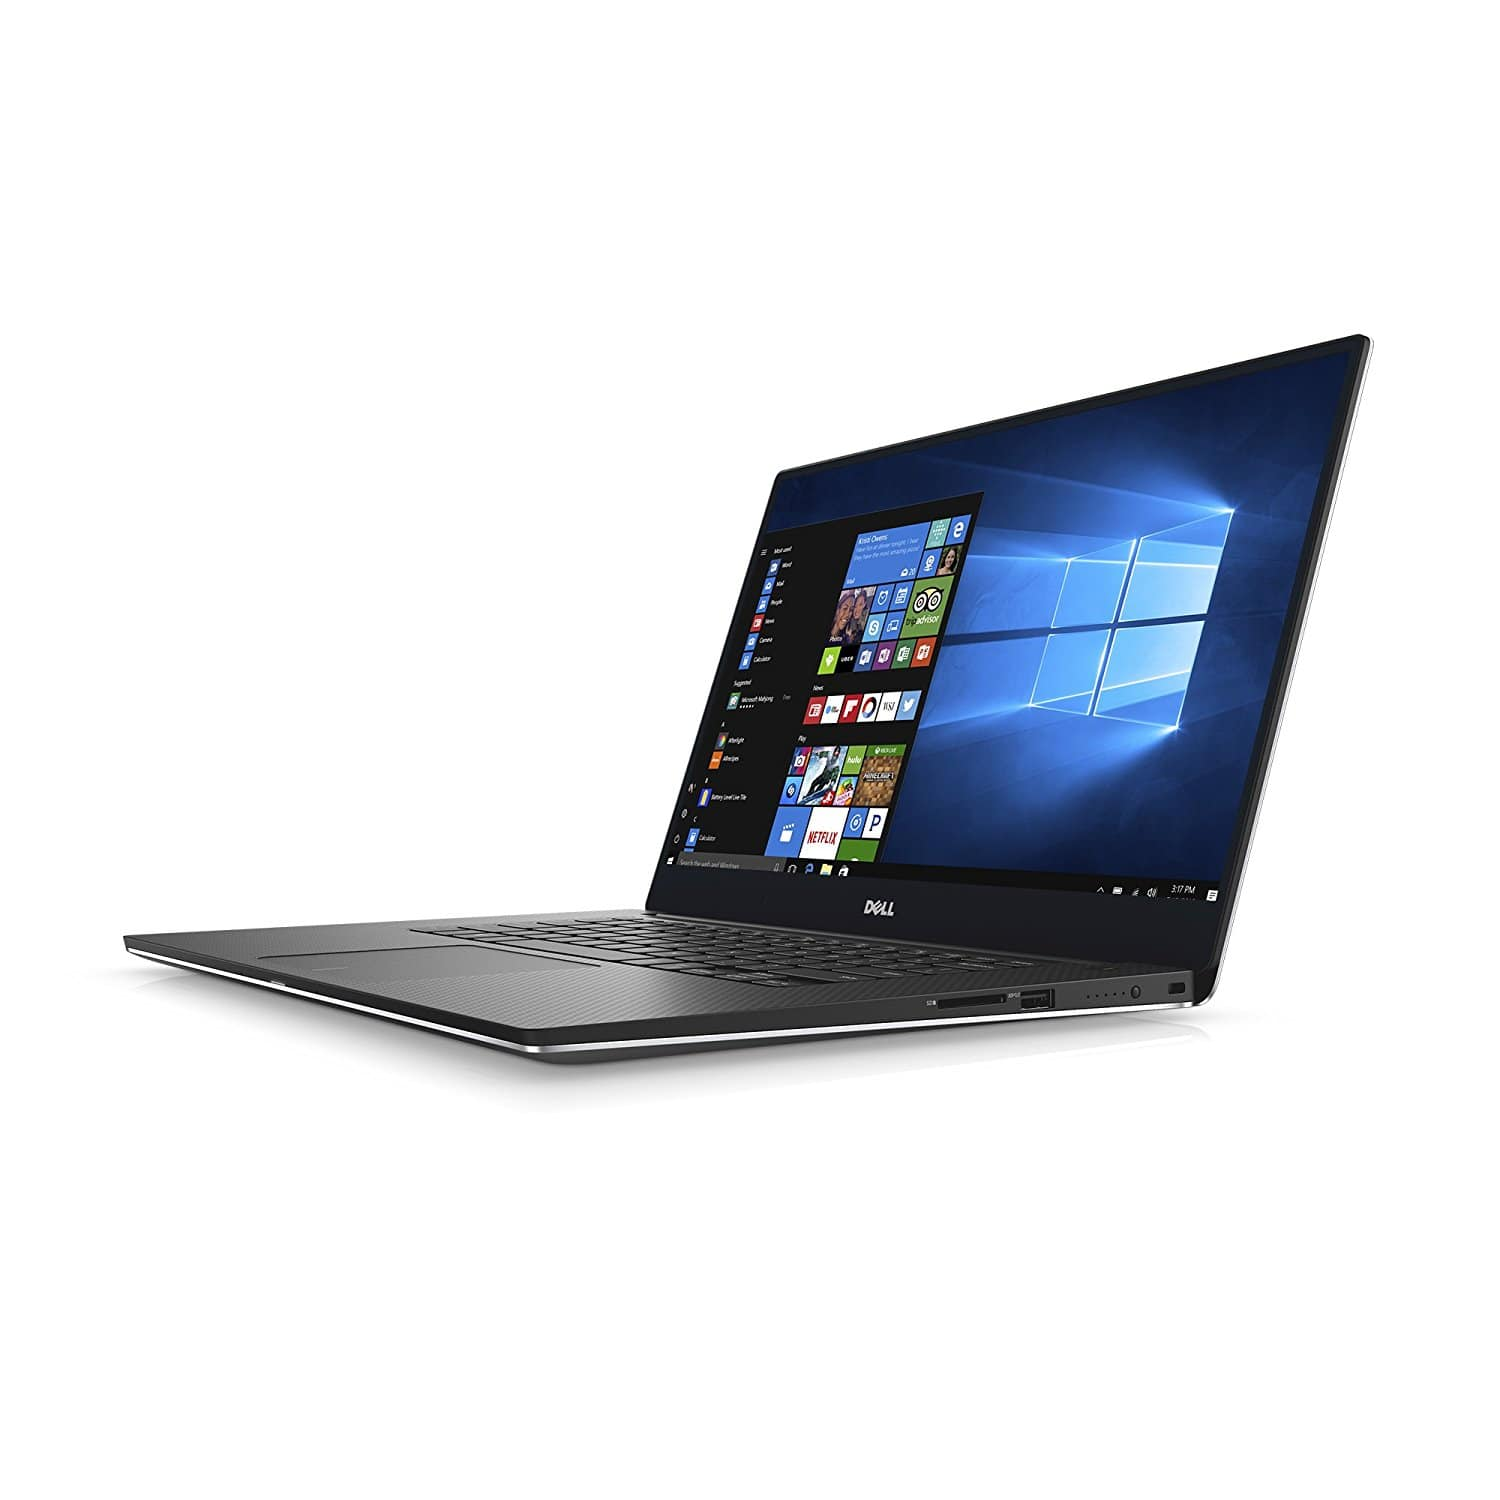 Dell XPS 15.6 4K Touchscreen Laptop i5-7300HQ Quad Core ...